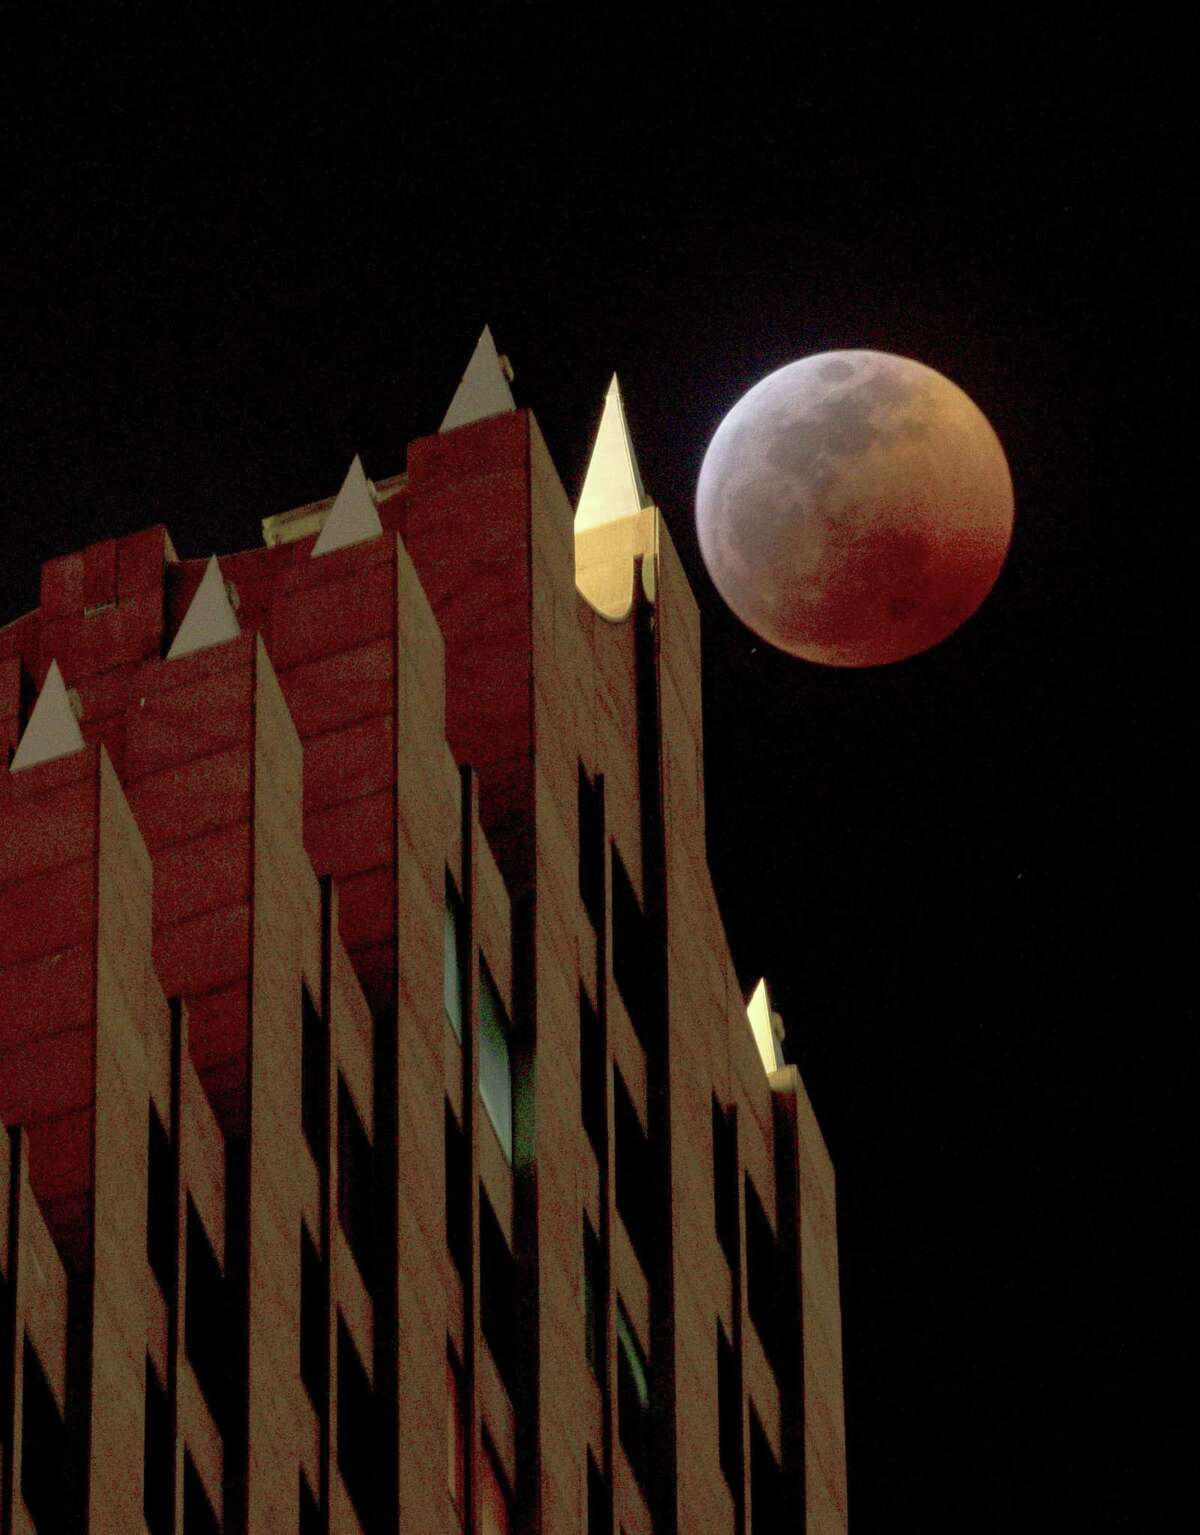 A super blood wolf moon eclipse occurs behind the Bank of America Center building in downtown Houston on Jan. 20, 2019. The moon was fully covered by the Earth's shadow over Houston around 10:30 p.m. that night.